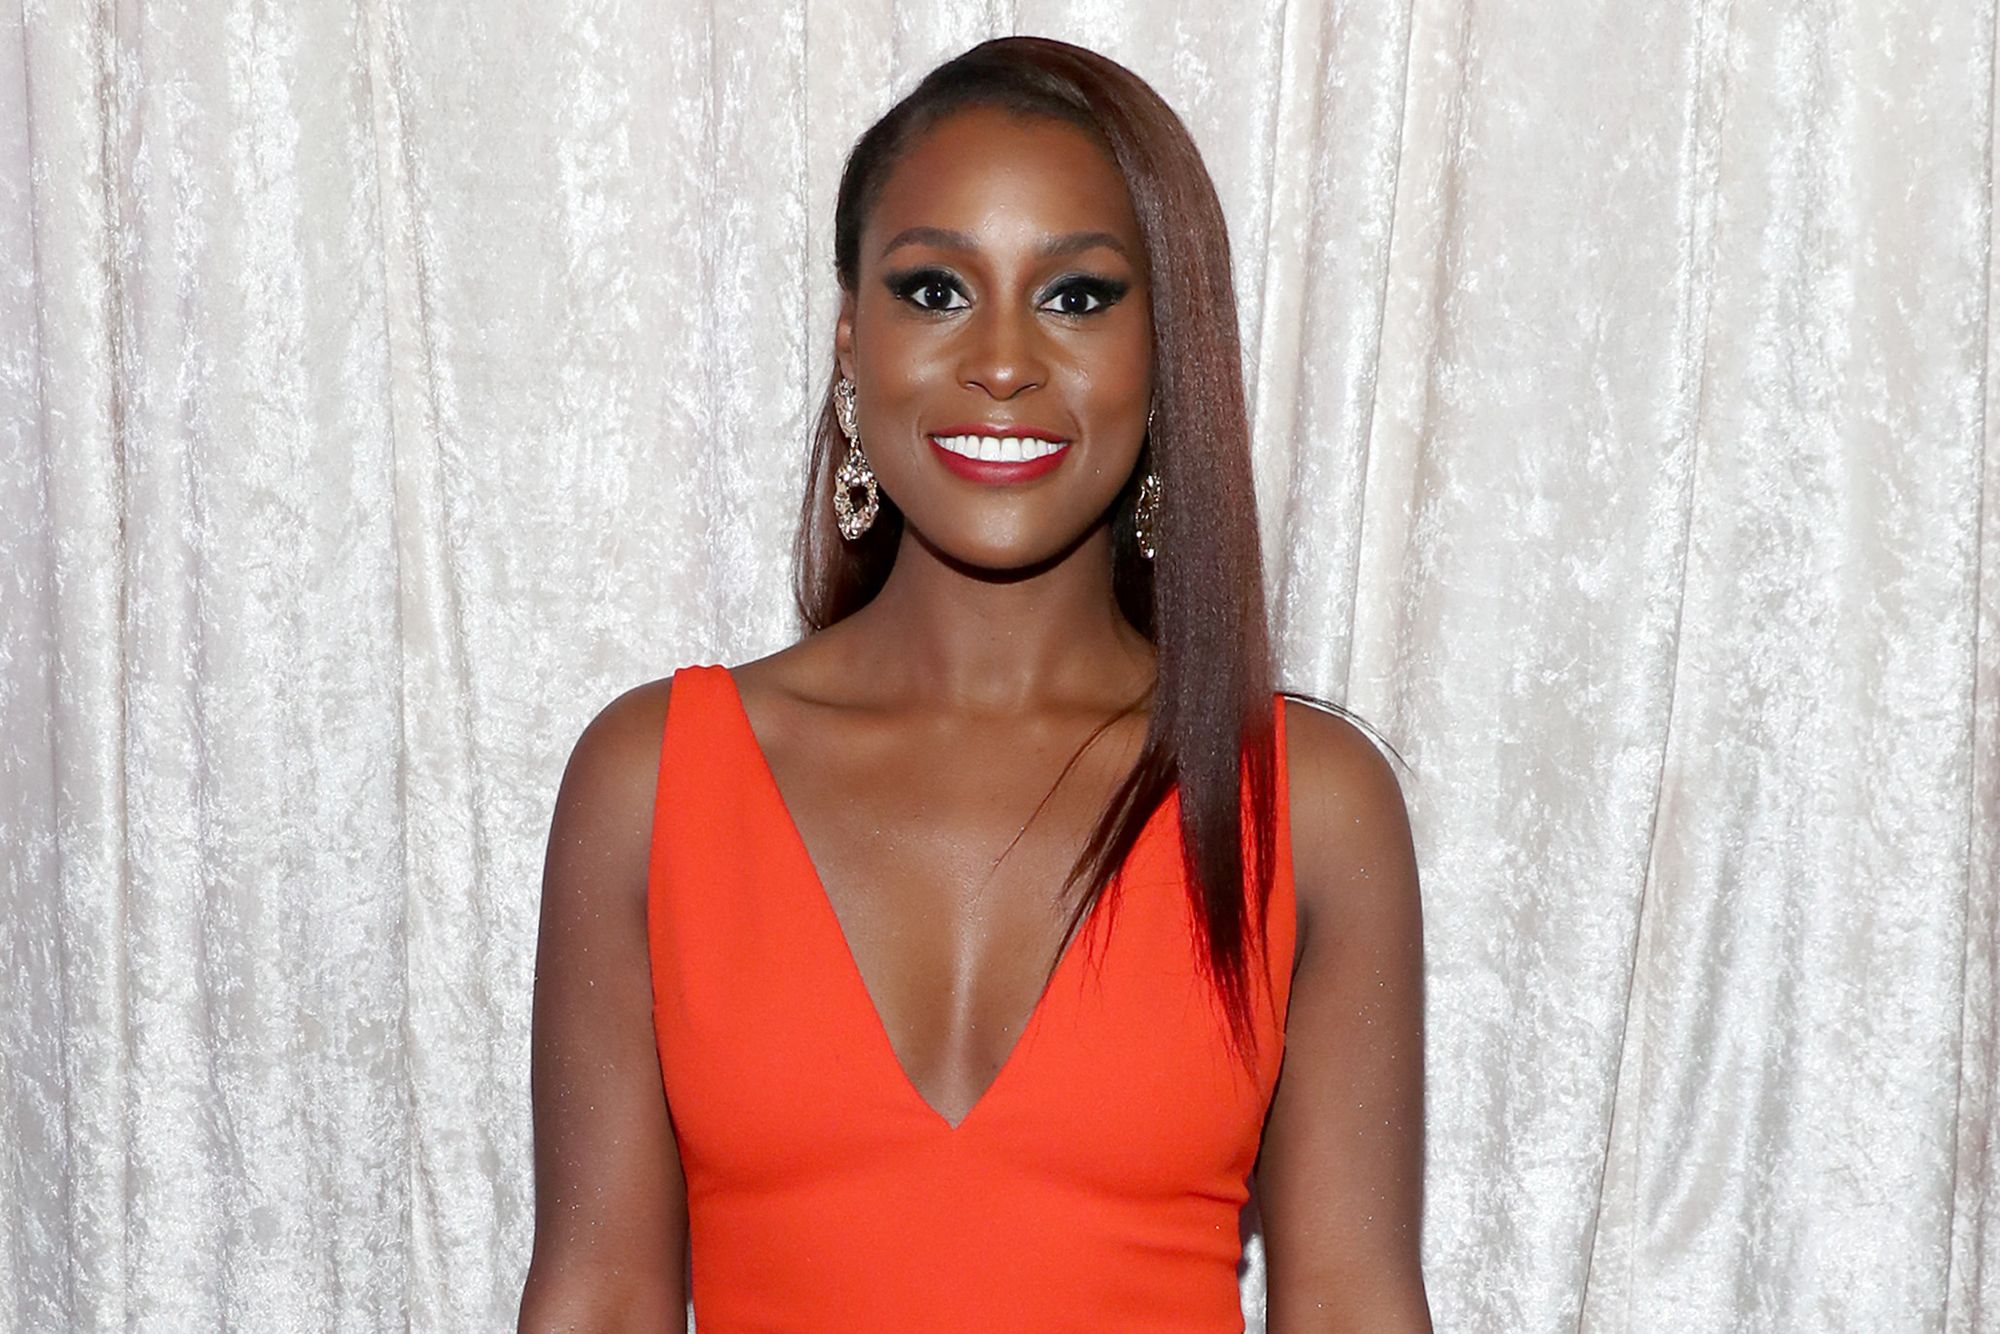 Issa Rae HBO Show 'Insecure' Will End After Upcoming Fifth Season